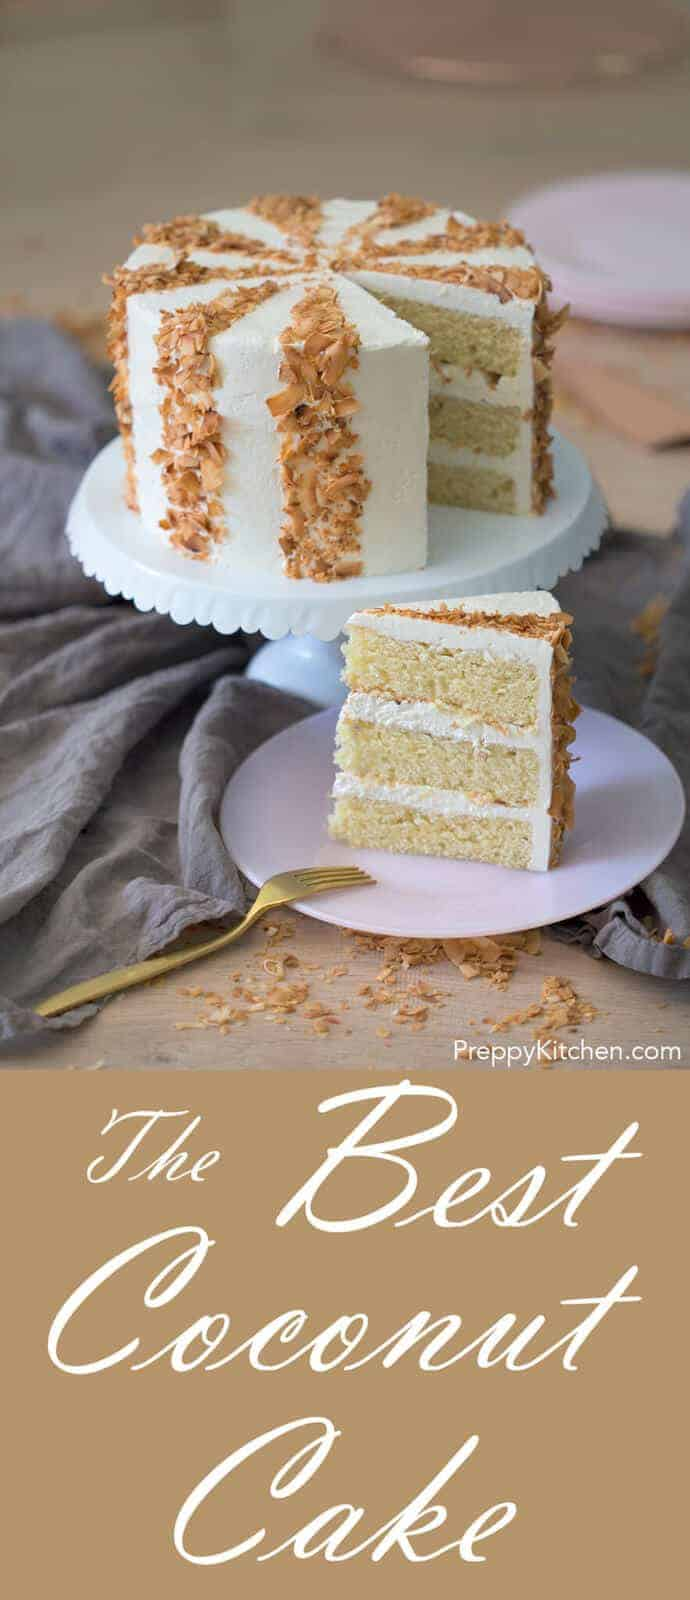 This cake has all the coconut flavors AND the buttercream is literally the lightest most dreamy frosting I've ever made. Don't use coconut extract in this cake the flavor is too strong an just doesn't taste natural.